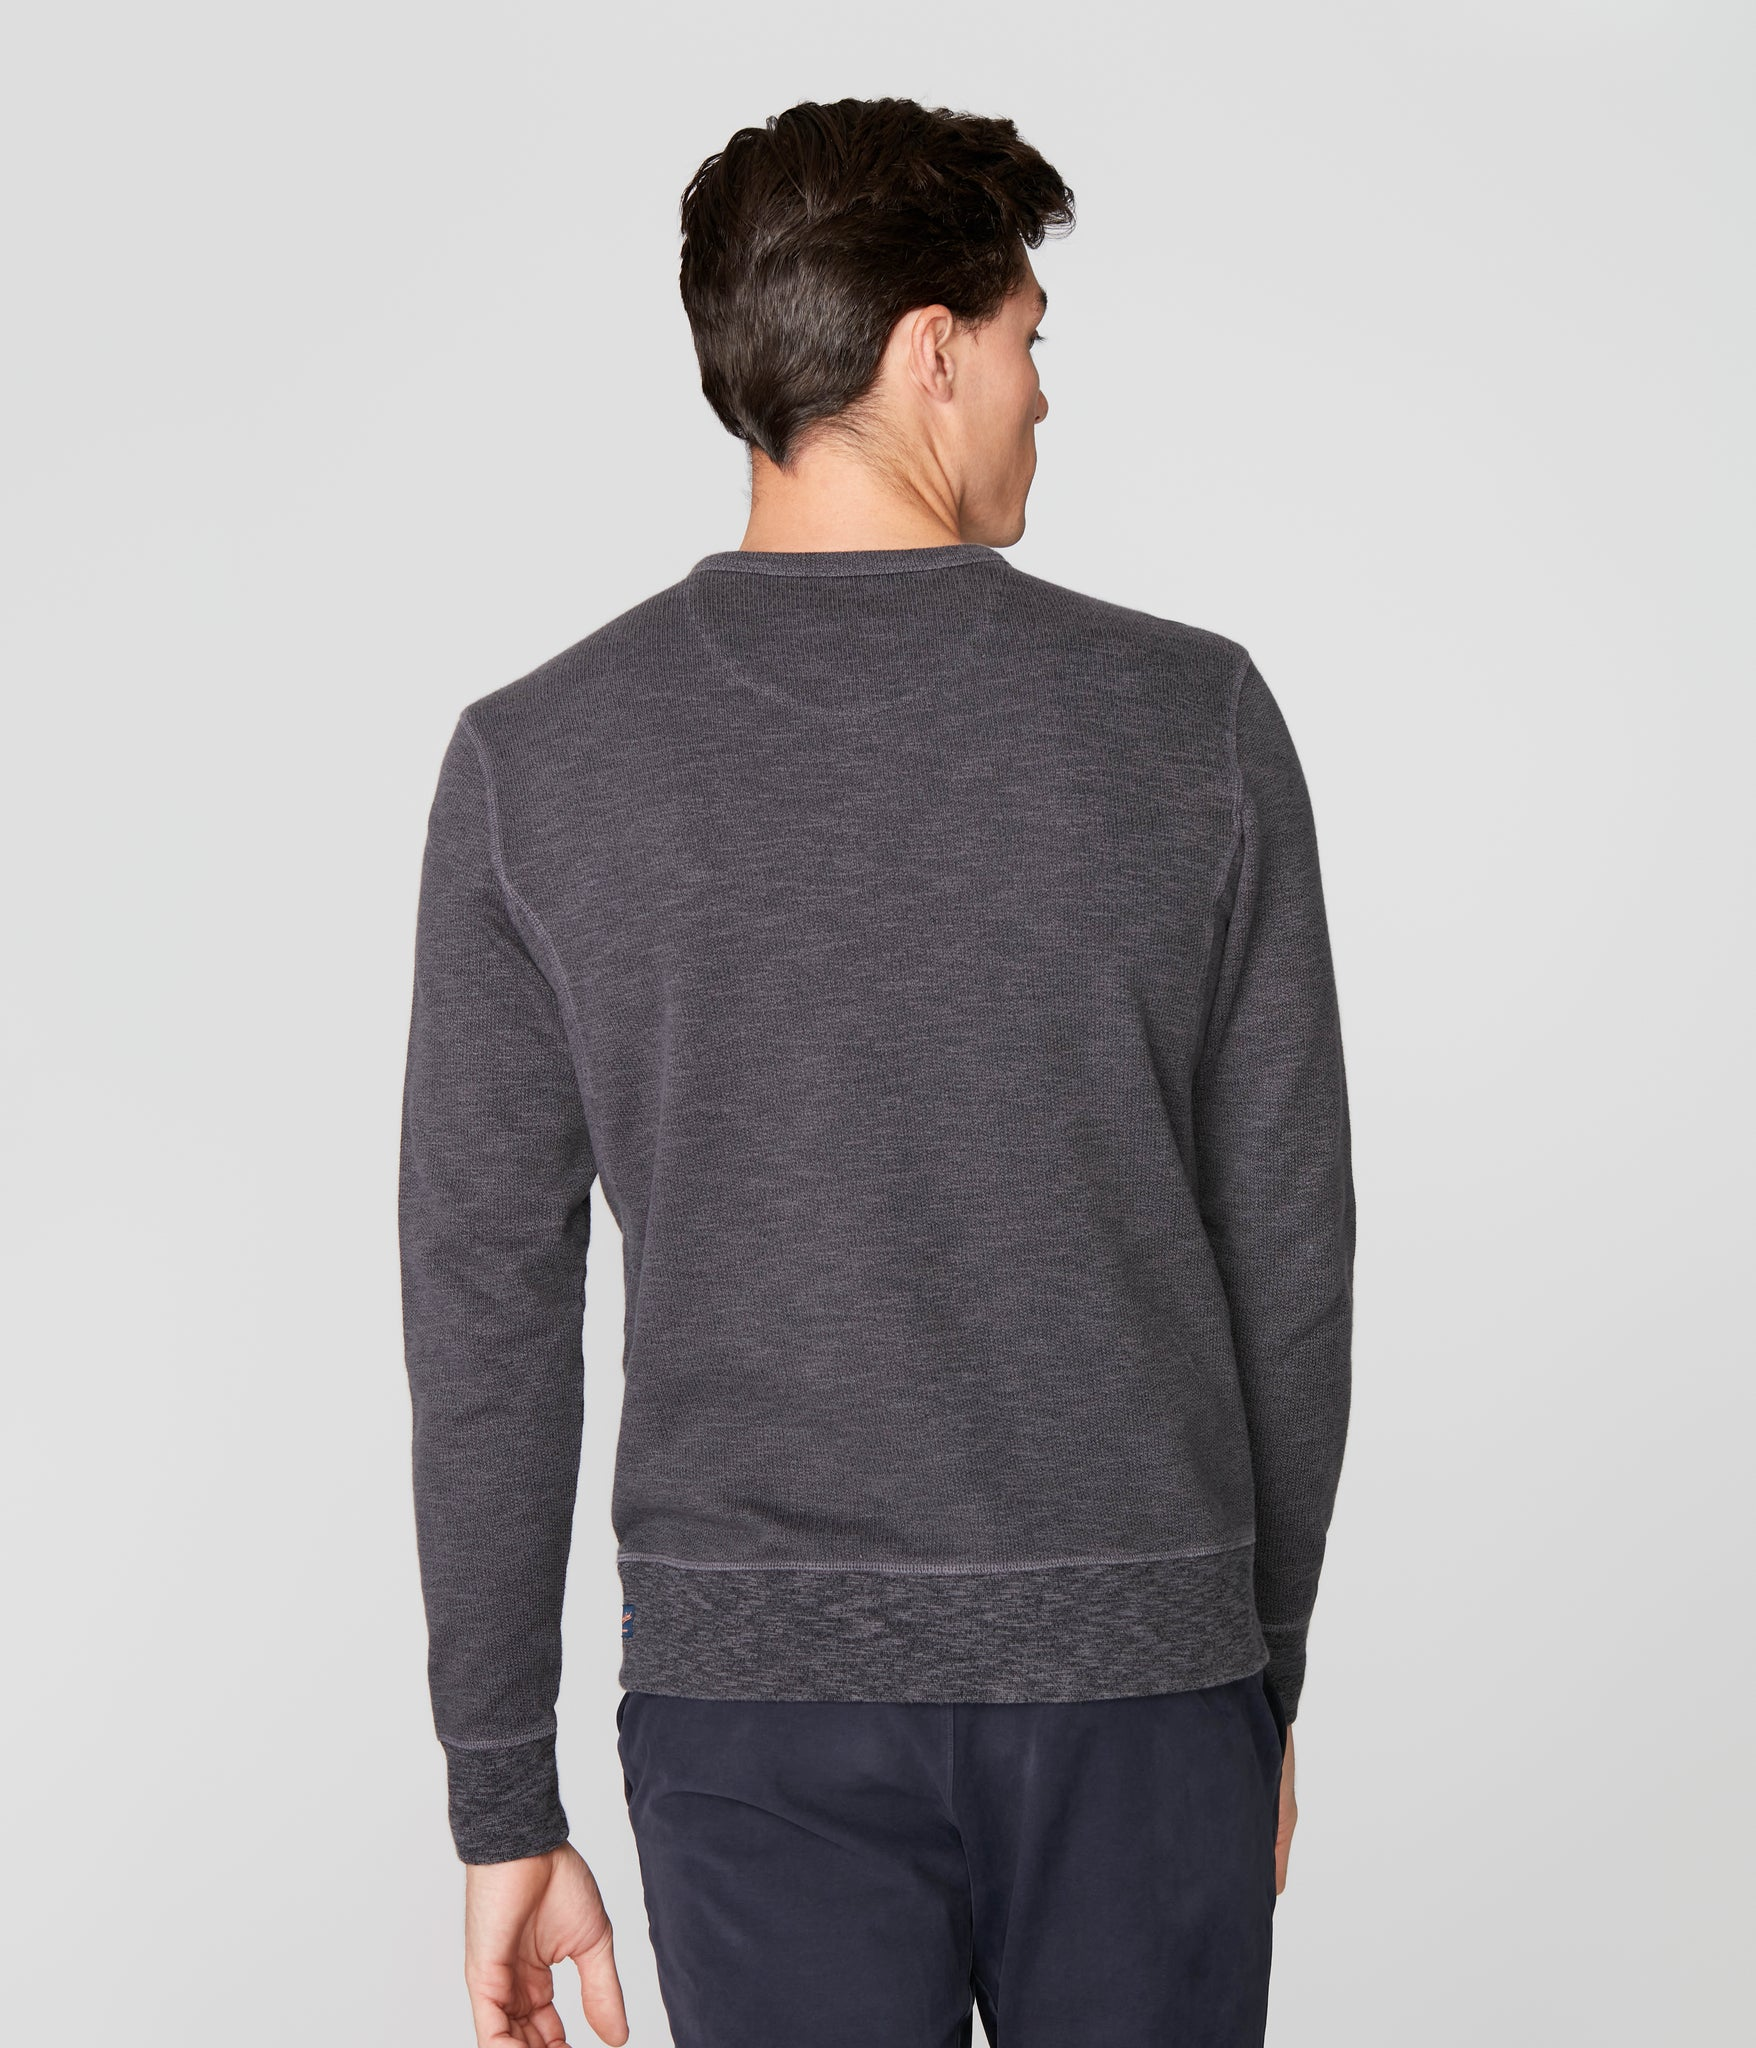 Victory V-Notch Sweatshirt in Black Marl - Magnet